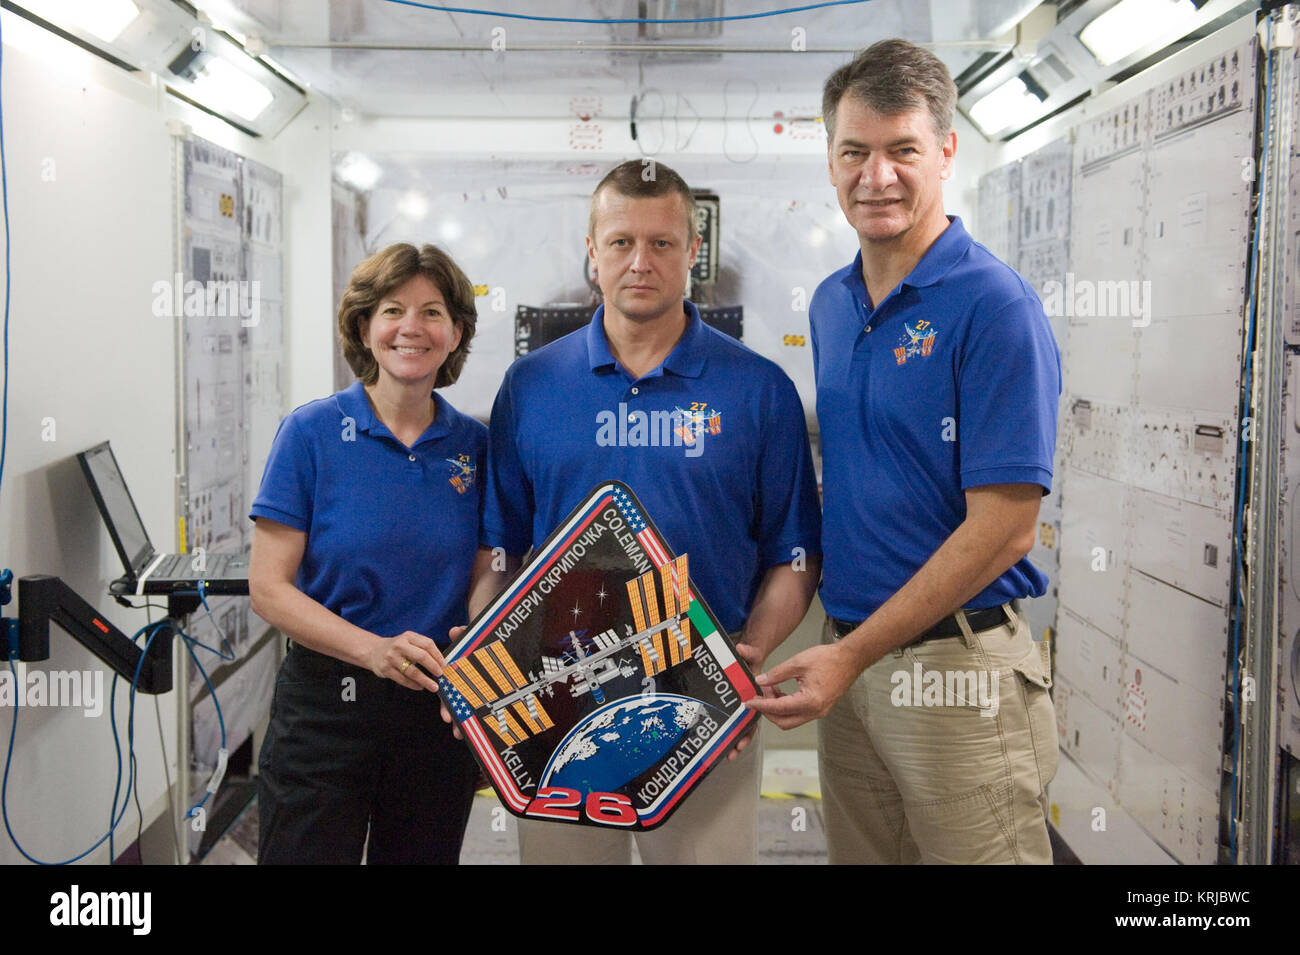 PHOTO DATE: 16 July 2010, LOCATION: Bldg. 9NW, SVMTF - ISS Mockups, SUBJECT: Joint STS-134, Expedition 25 and Expedition - Stock Image